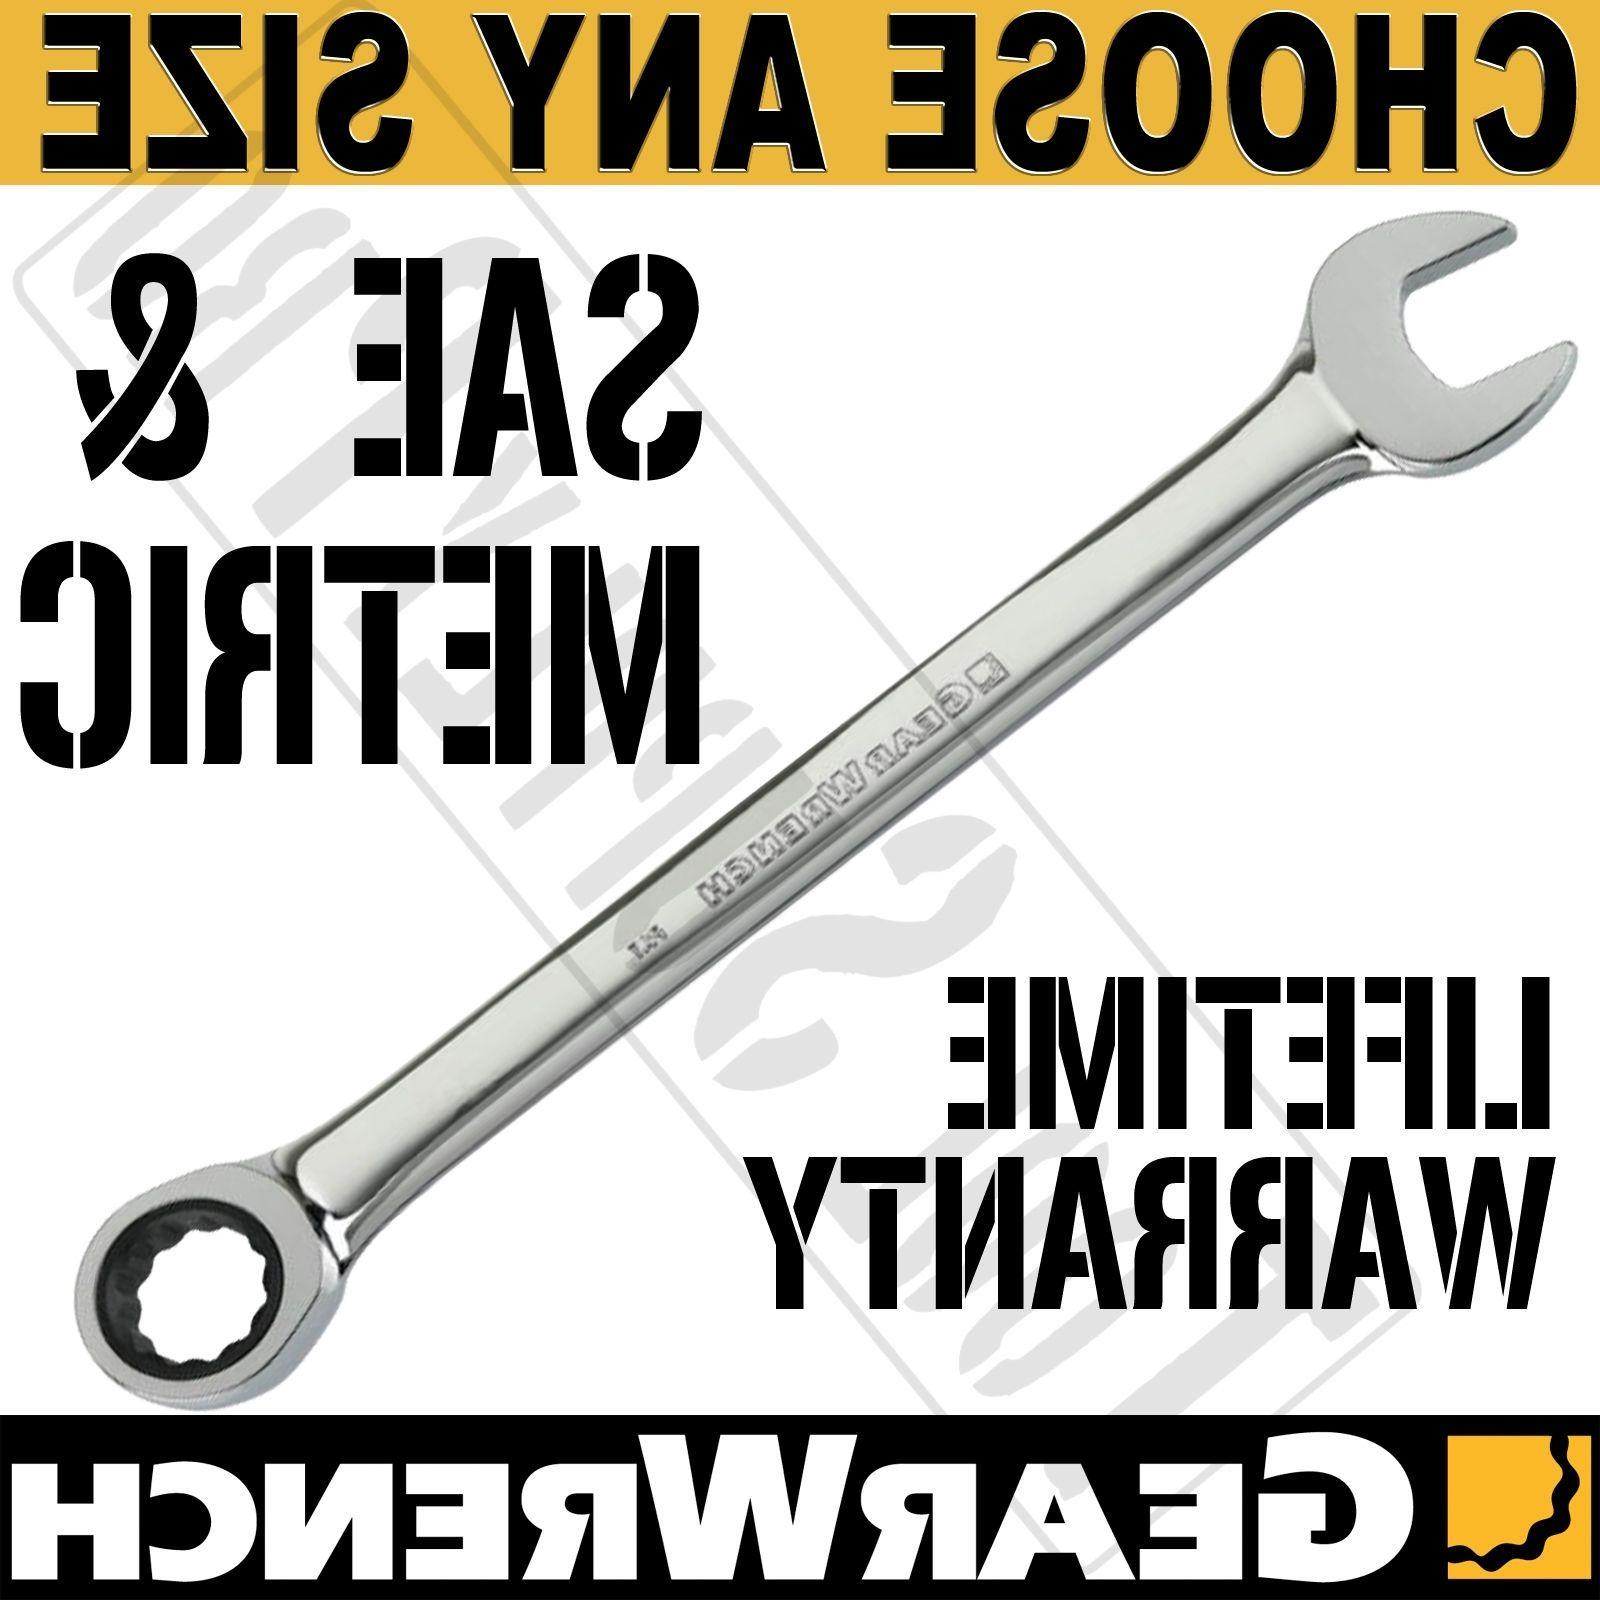 GearWrench 12 Point Combination Ratcheting Wrench INCH METRI